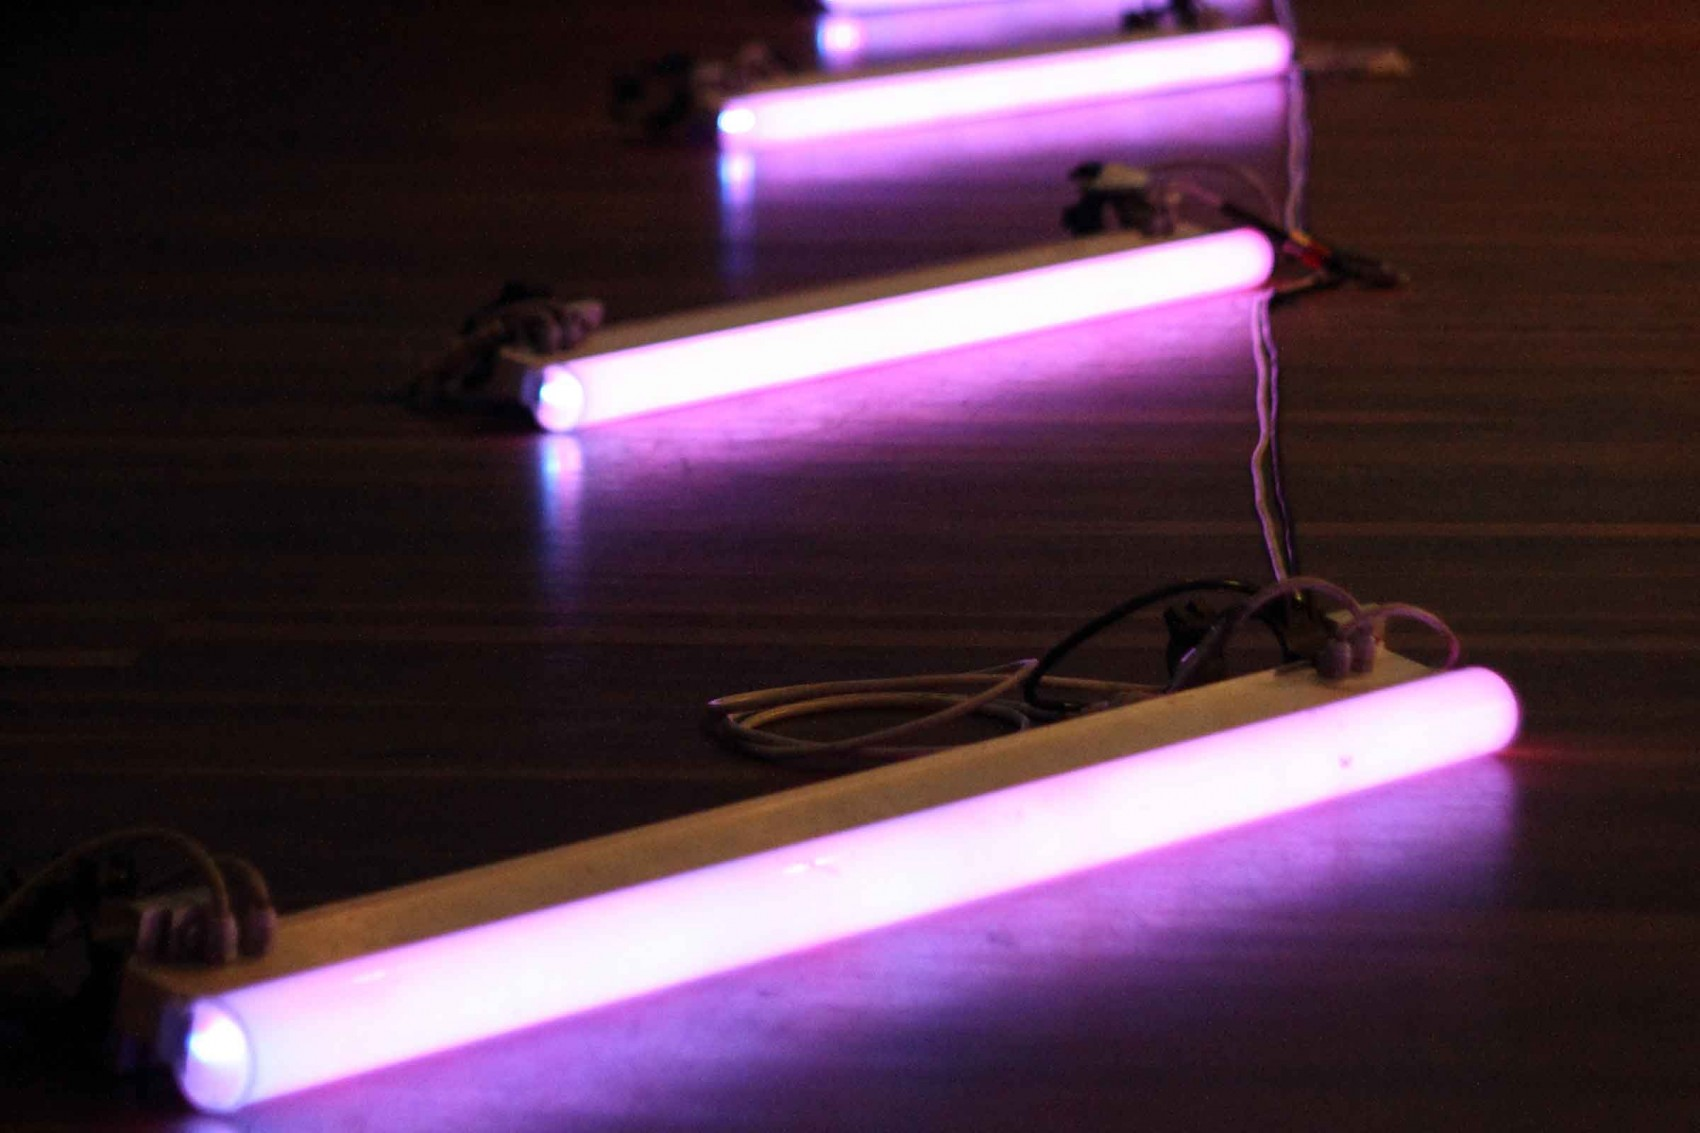 Four fluorescent pink tube lights in a row on a wooden floor